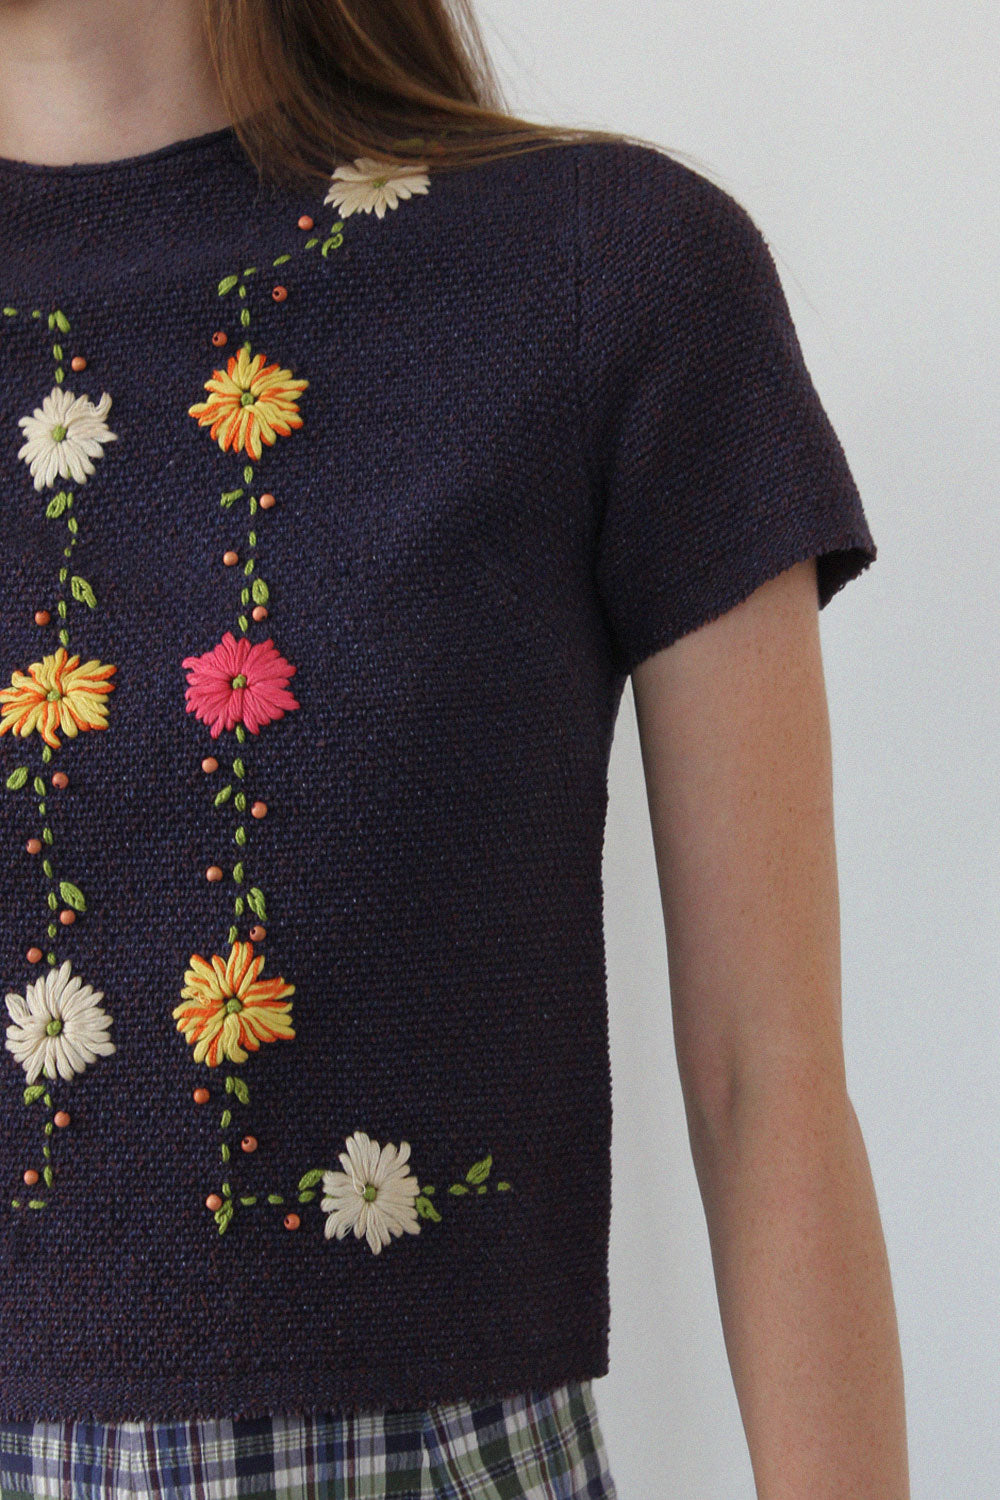 Marching Floral Embroidered Top S